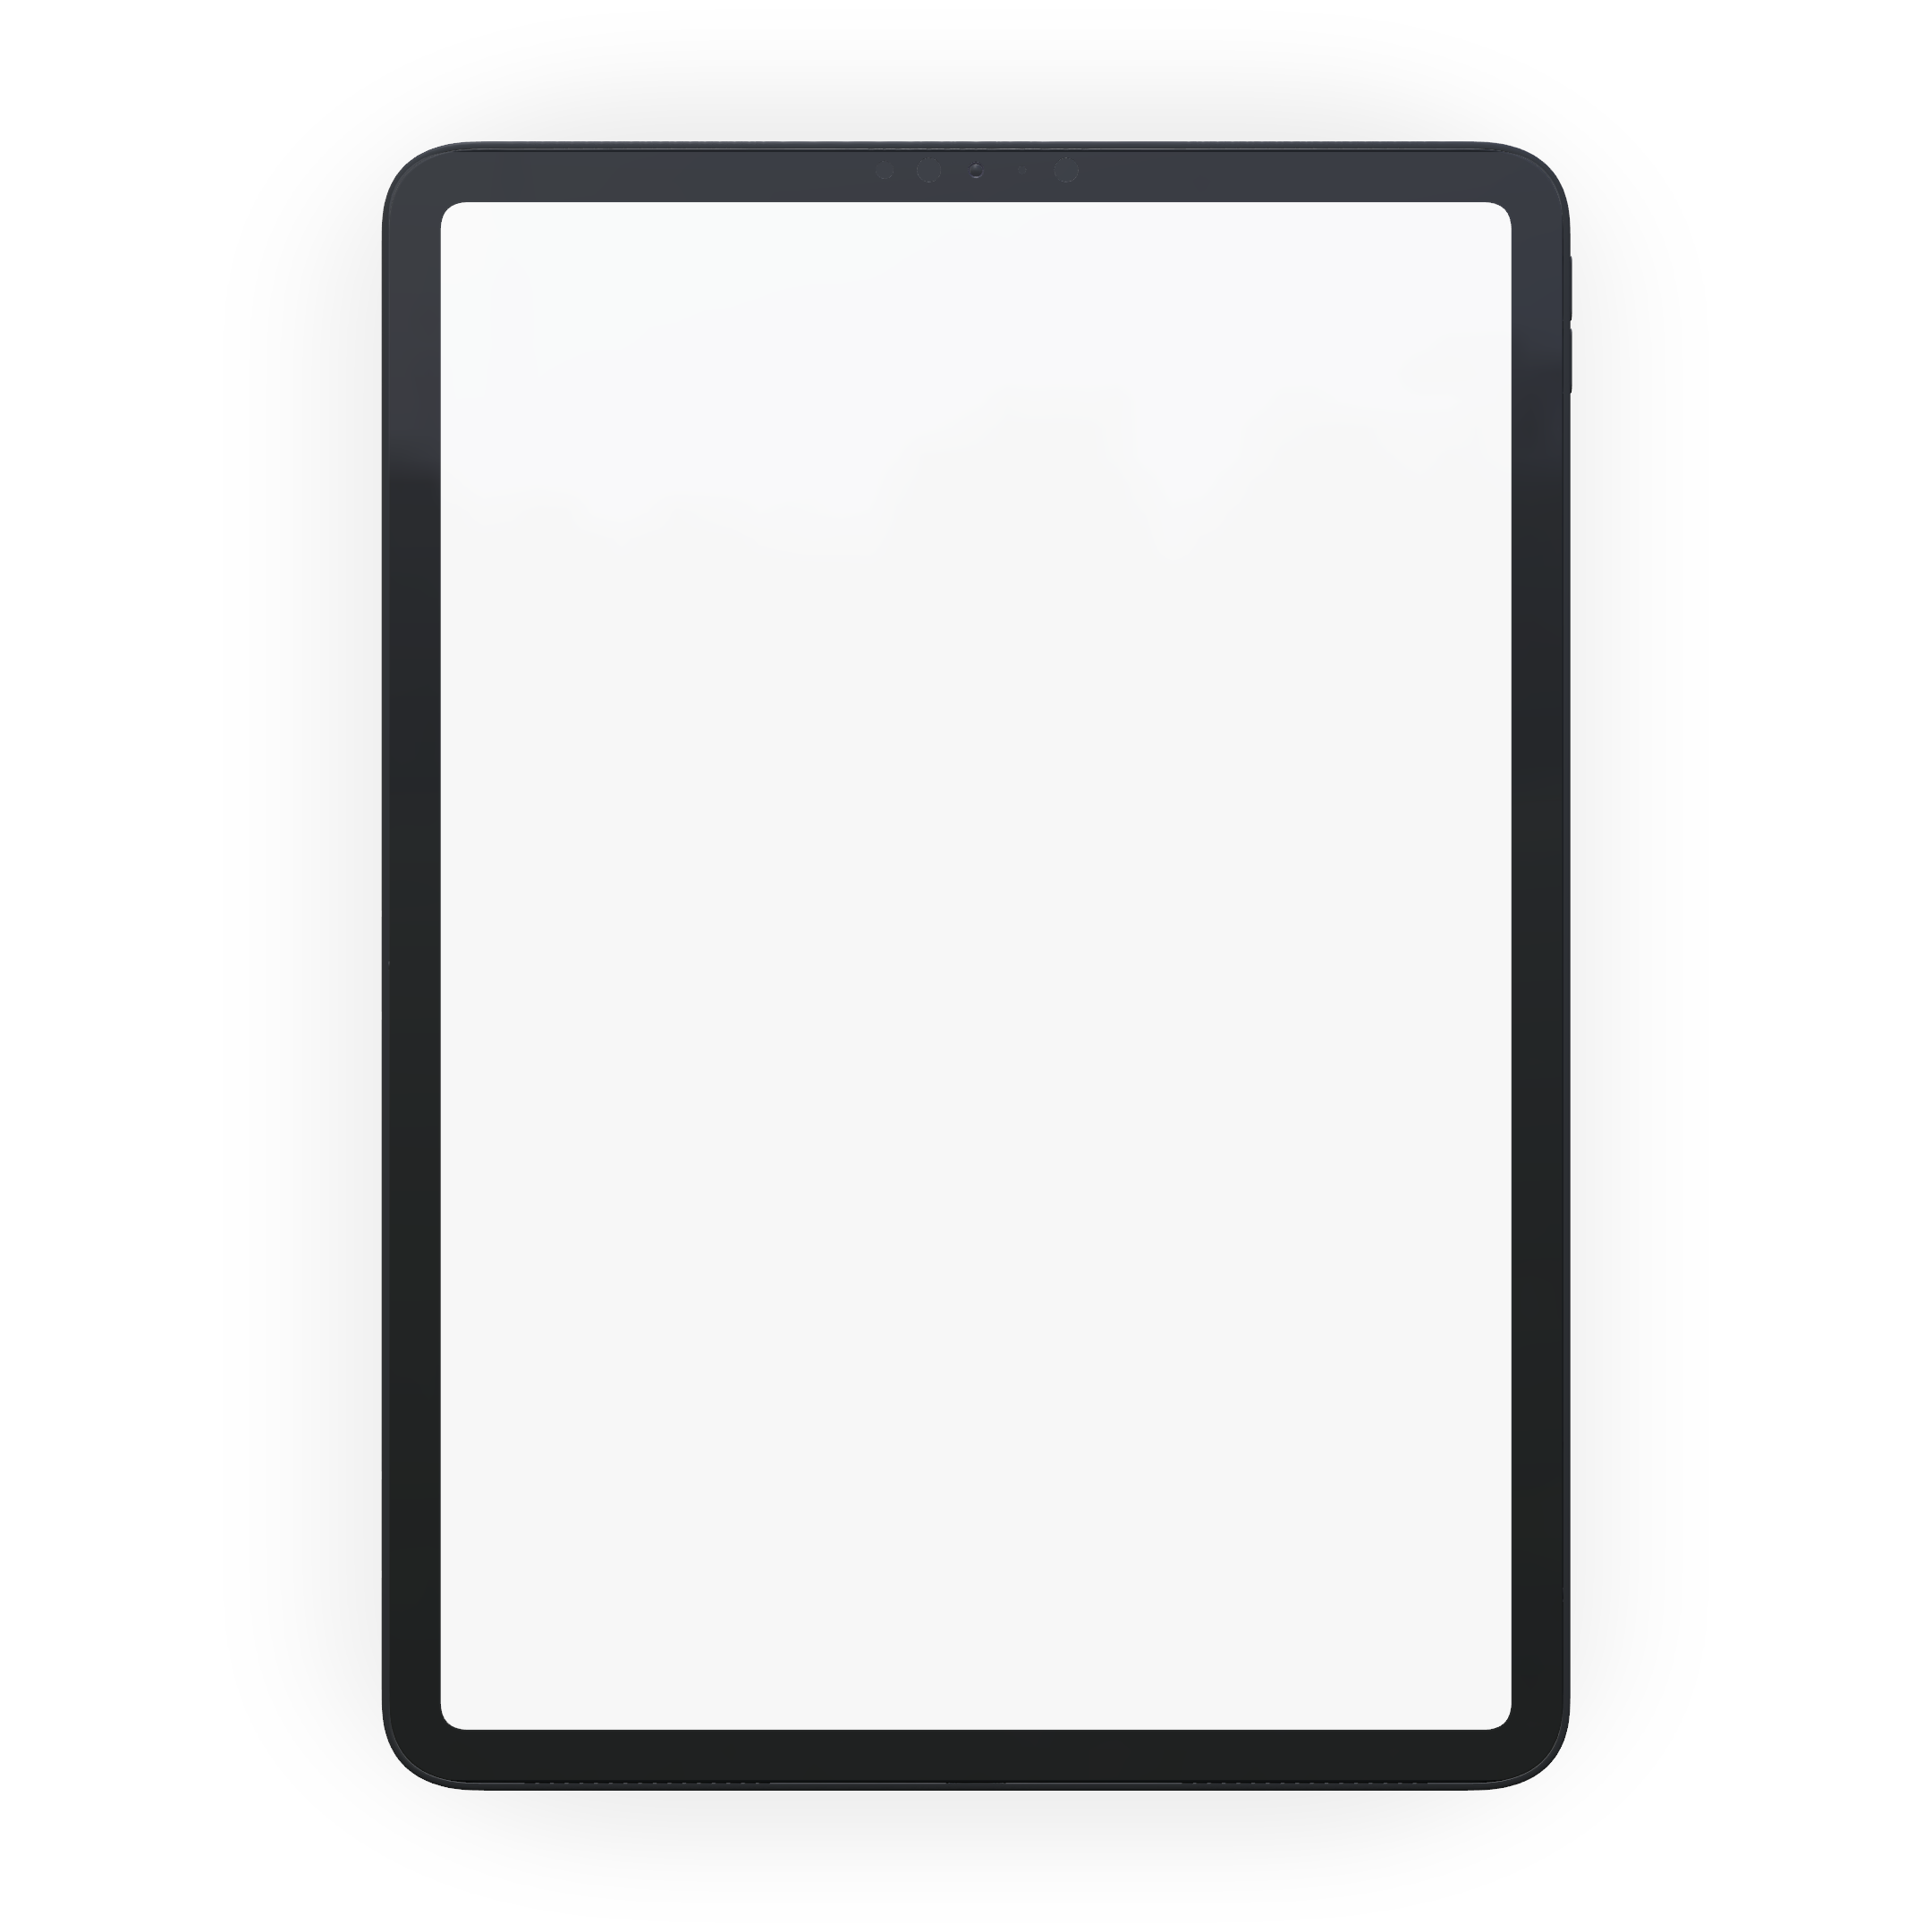 ipad mockup for tablet apps